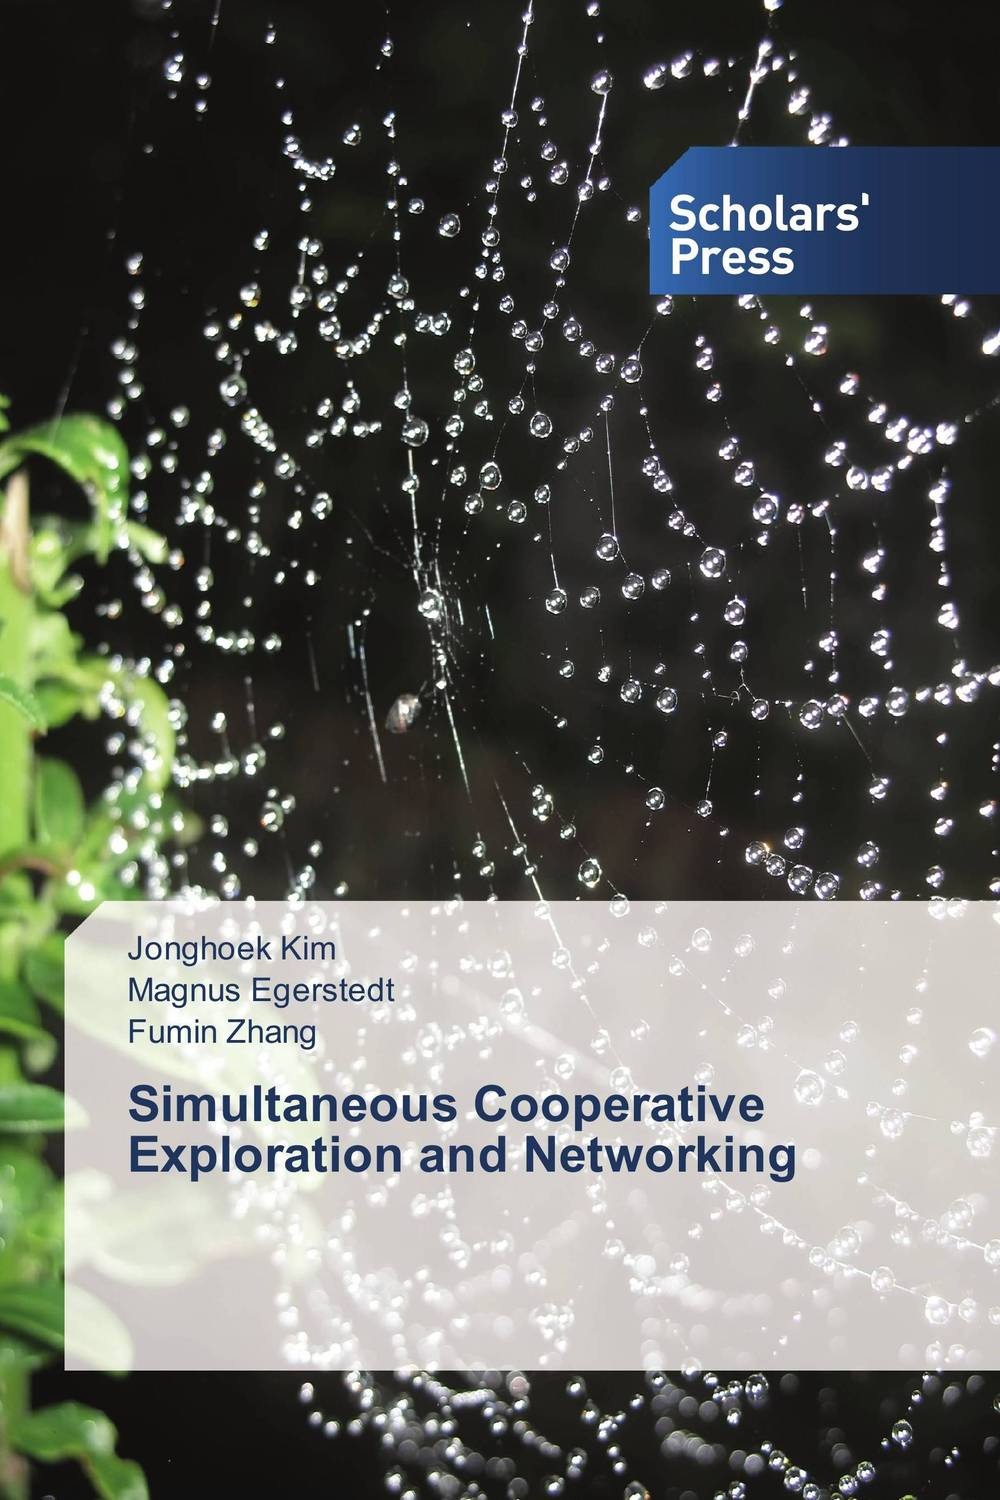 Simultaneous Cooperative Exploration and Networking